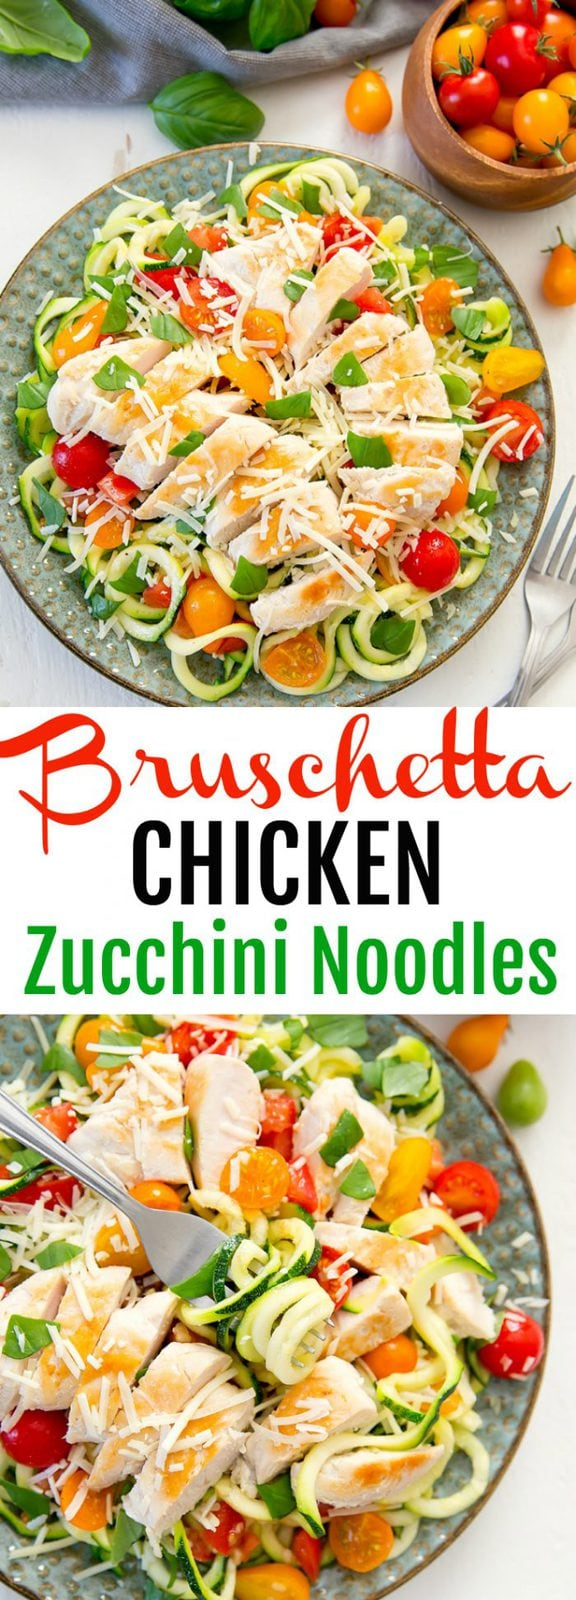 Low Carb Bruschetta Chicken Zucchini Noodles